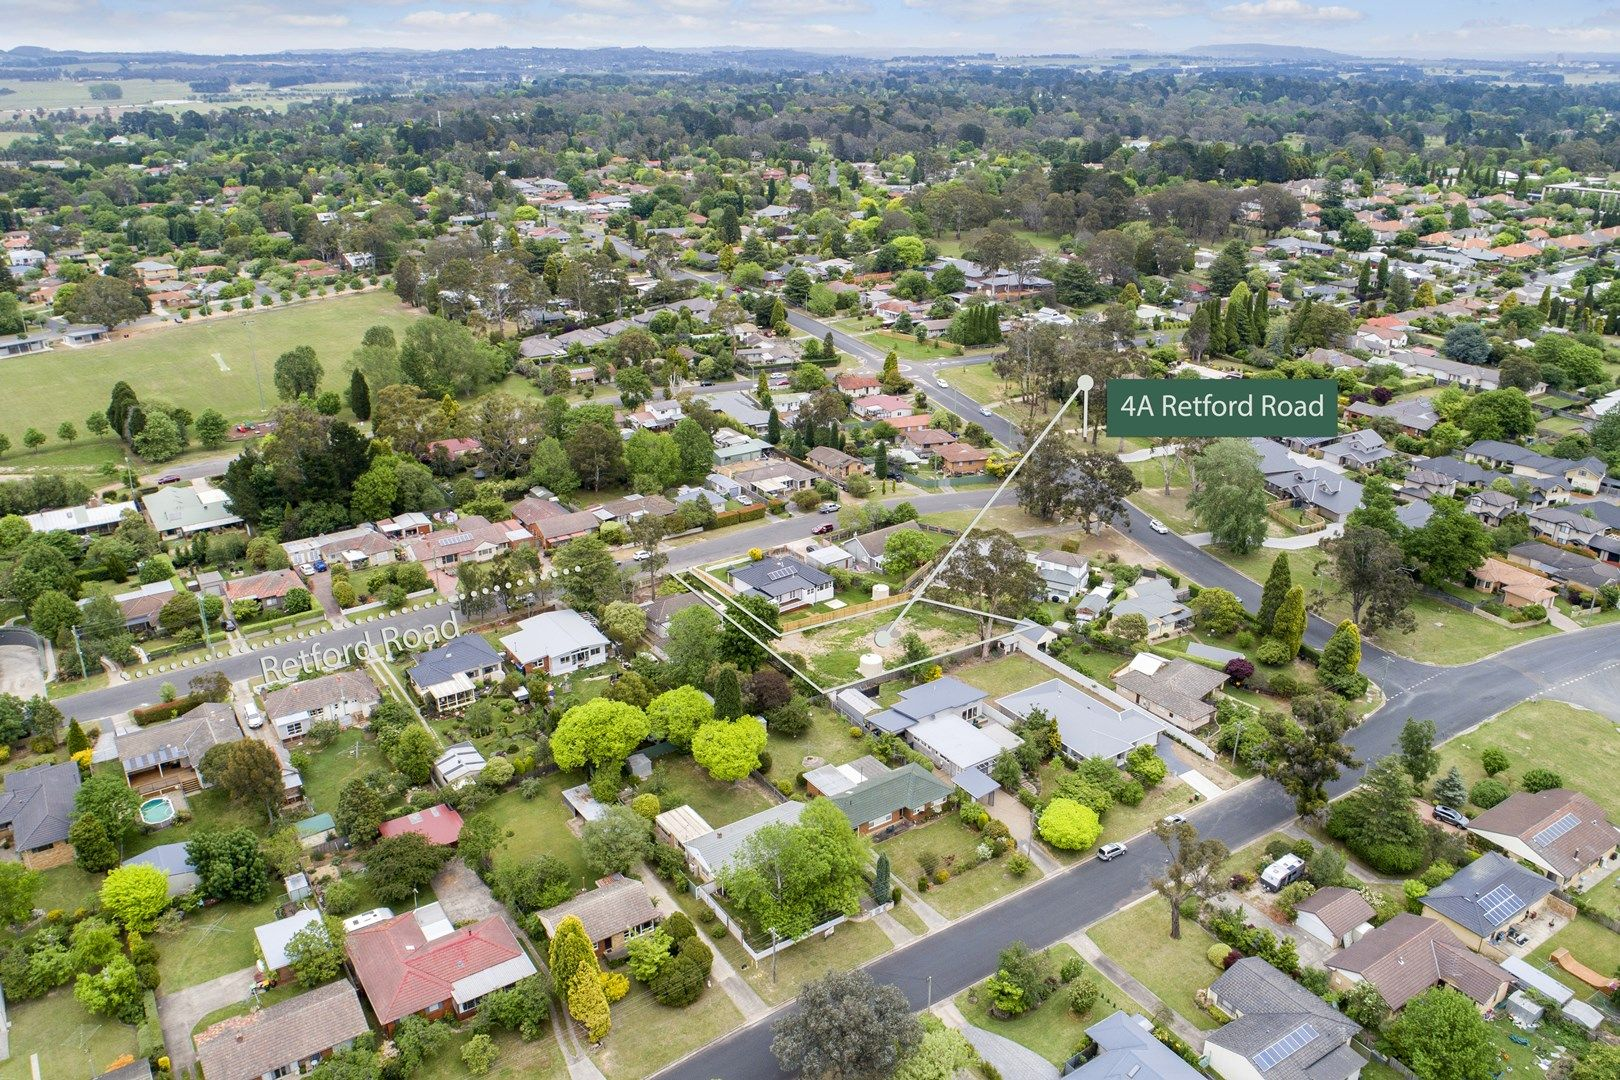 Lot 82, 4A Retford Road, Bowral NSW 2576, Image 0